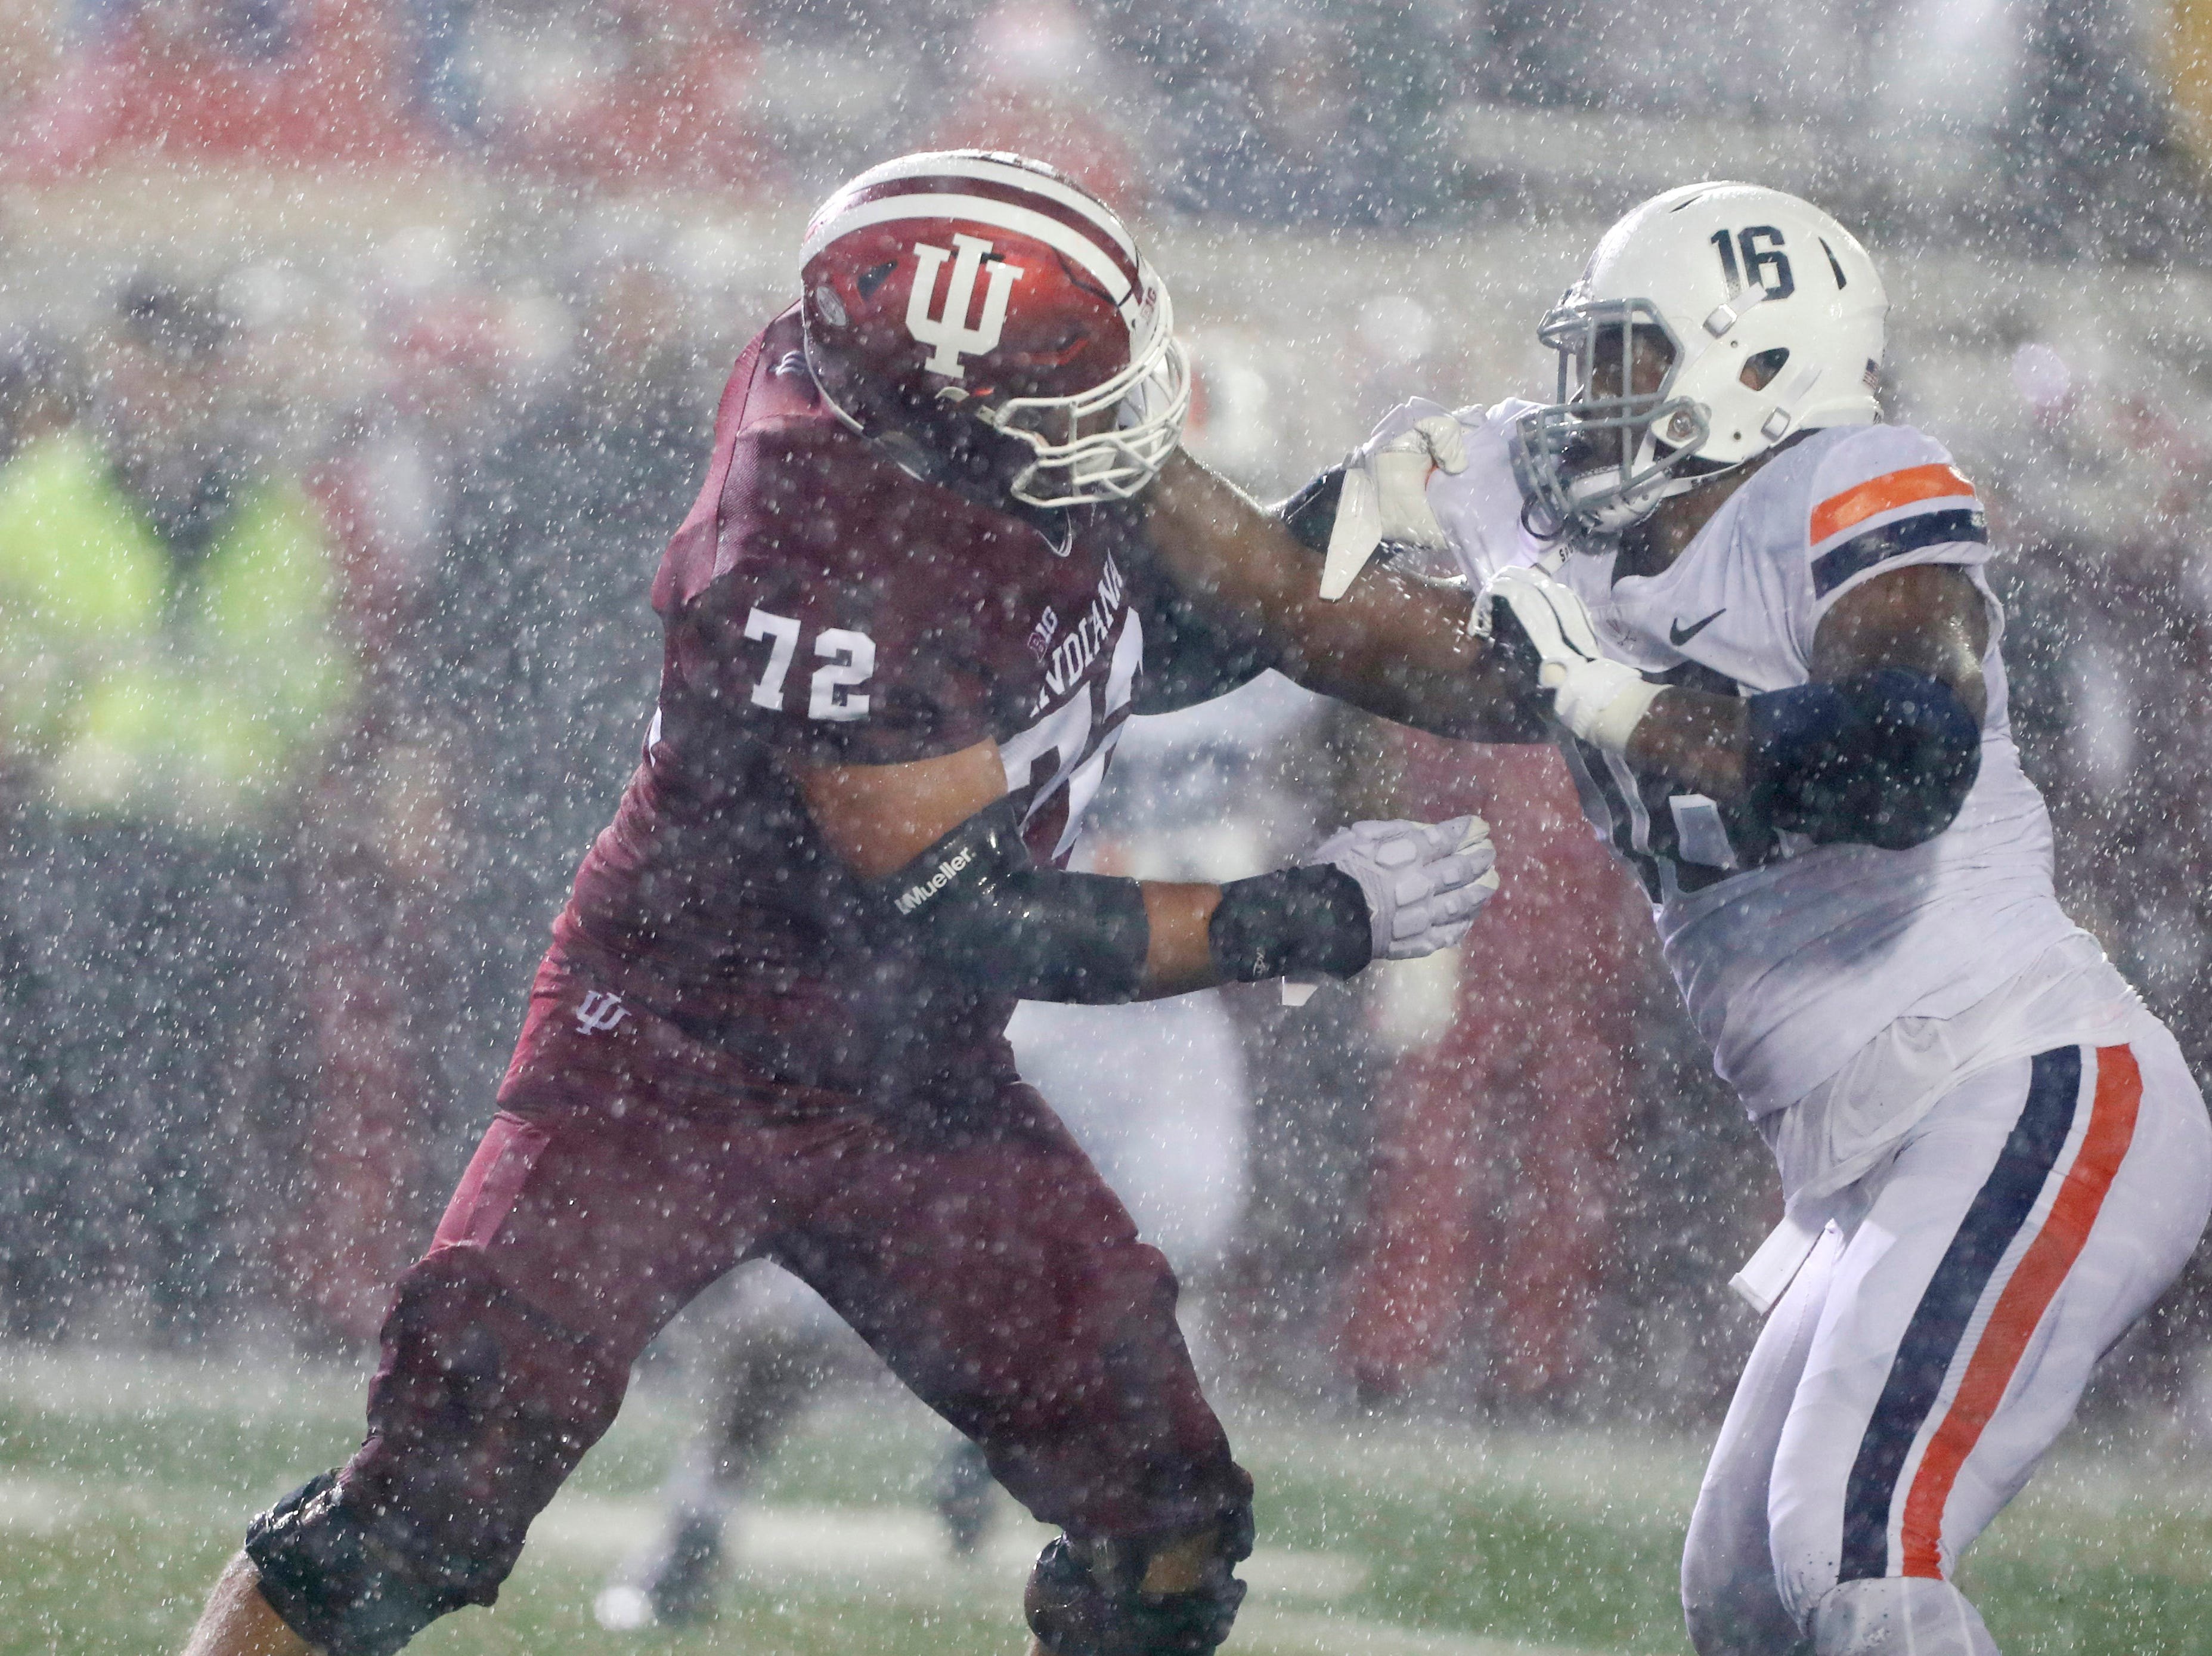 Indiana Hoosiers offensive lineman Simon Stepaniak (72) blocks Virginia Cavaliers defensive end Richard Burney (16) during the first quarter at Memorial Stadium.